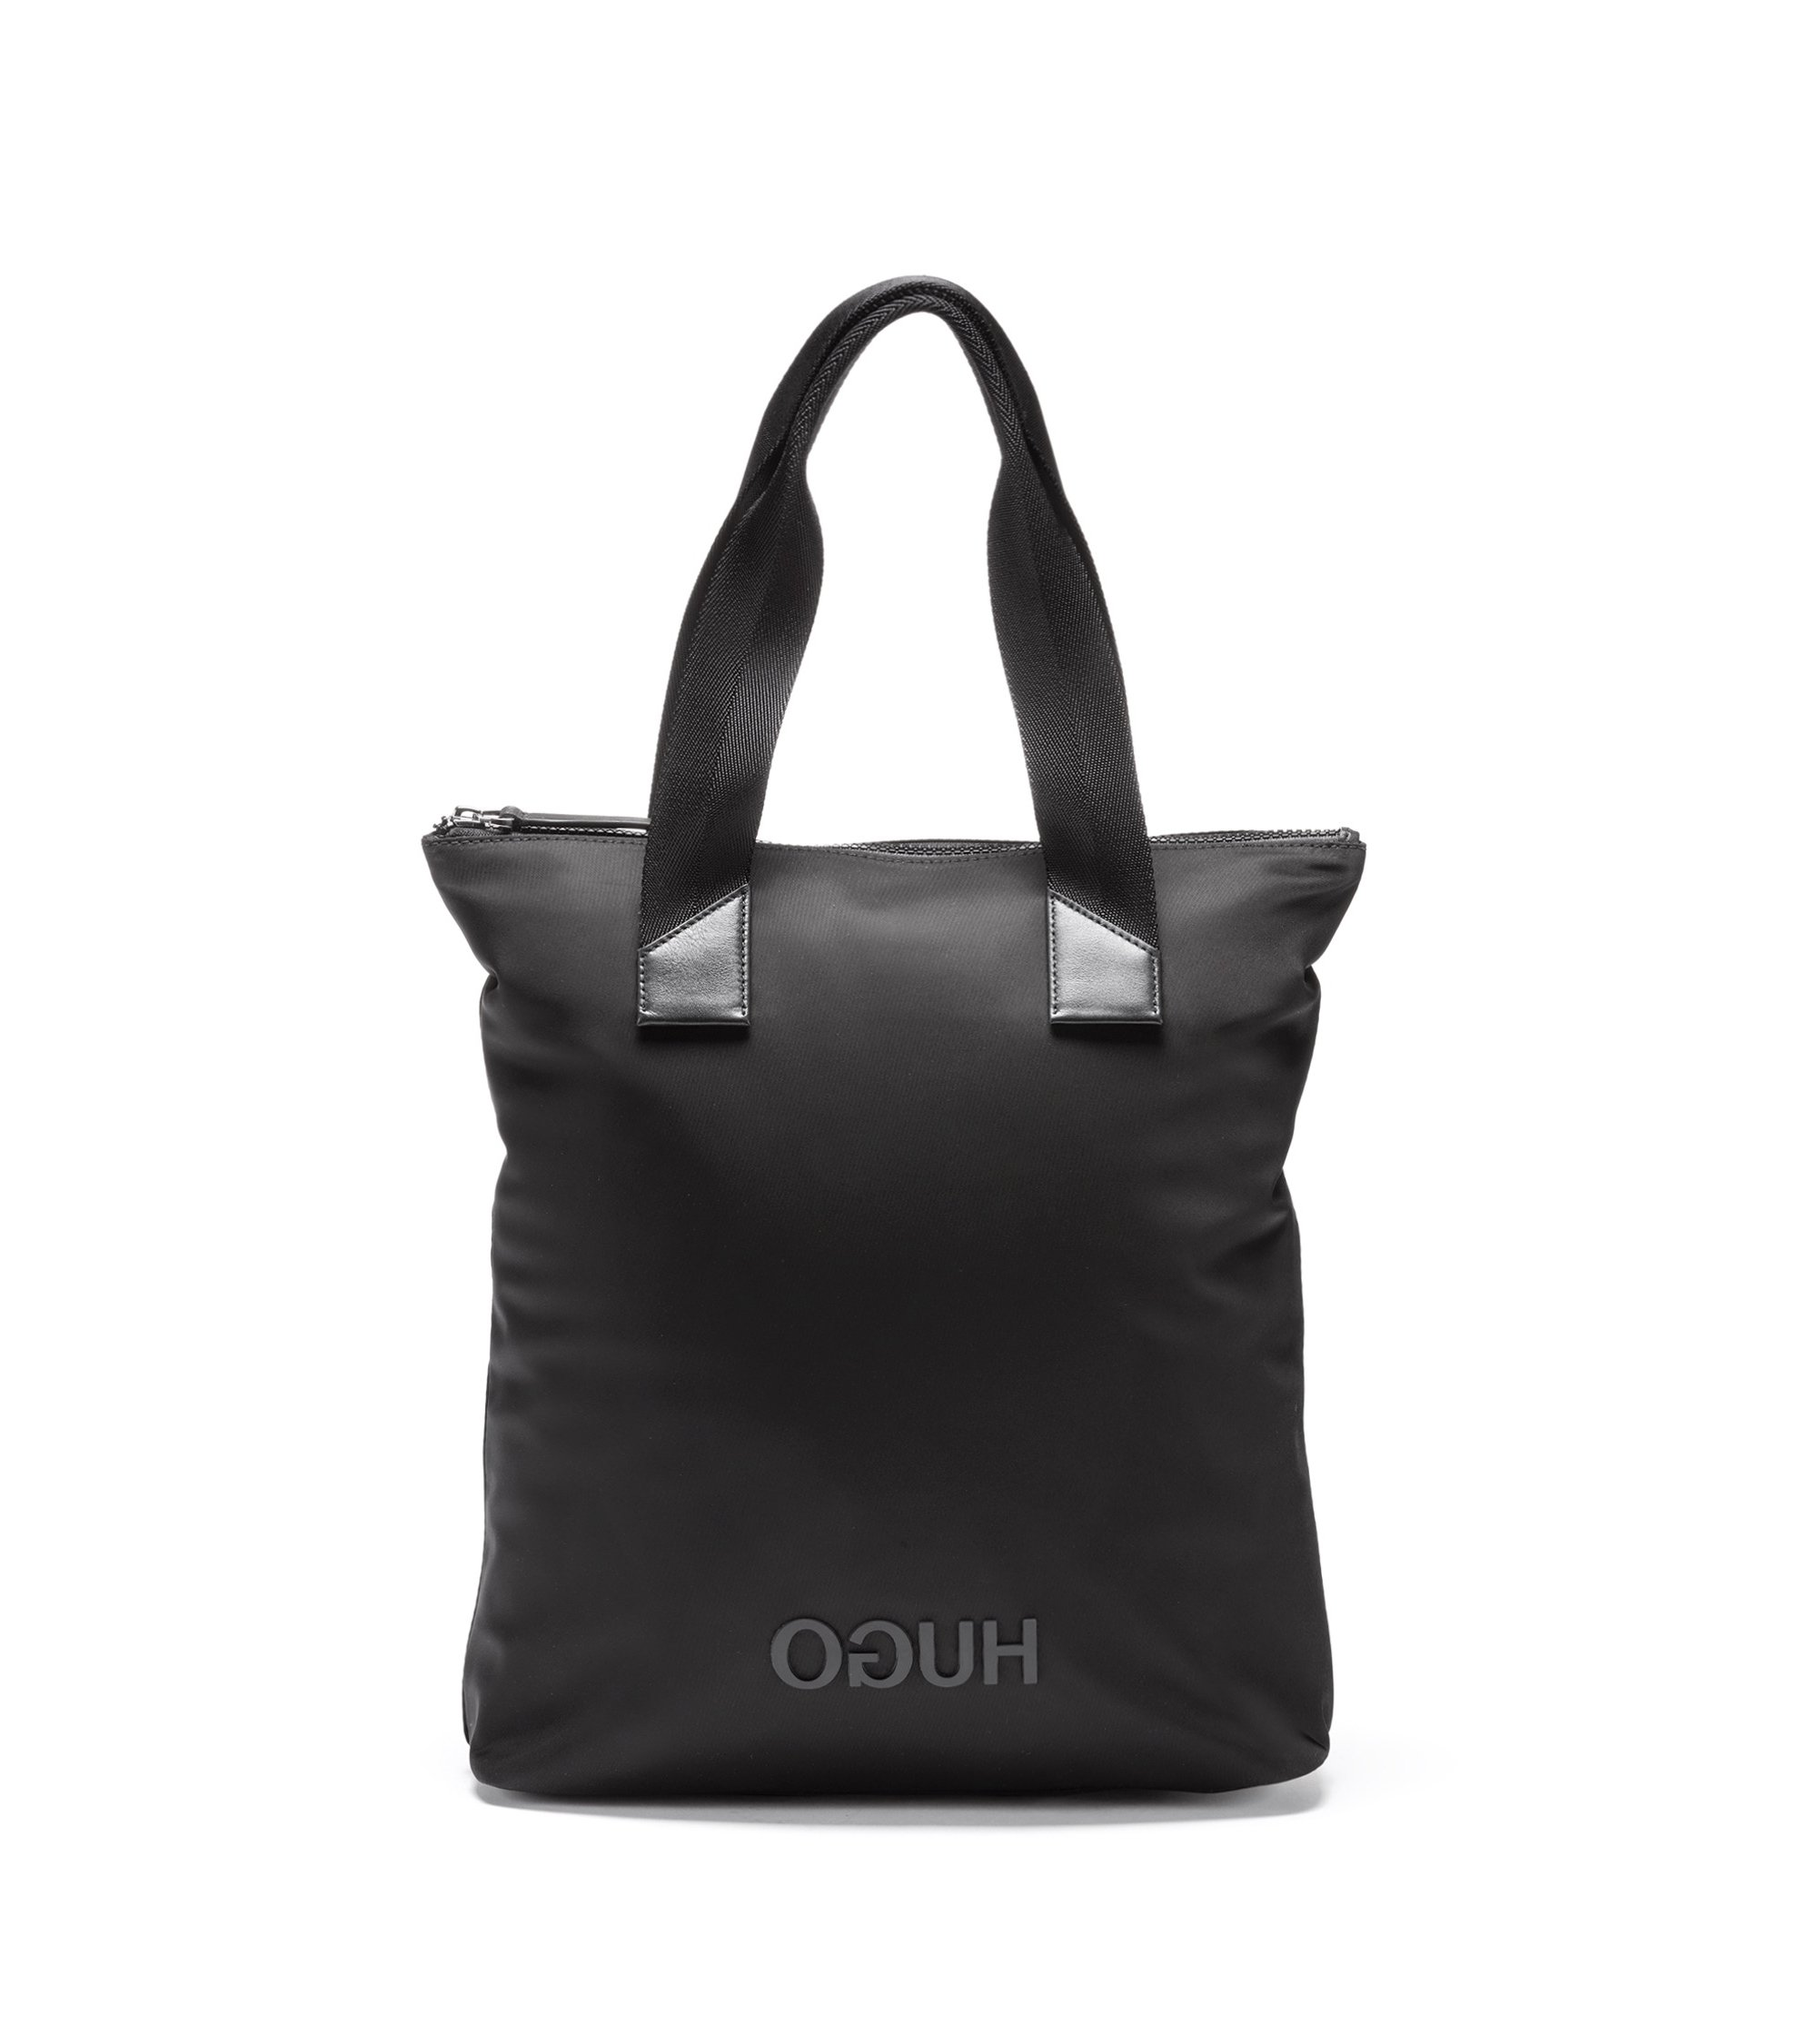 Reversed-logo shopper bag in nylon gabardine, Black